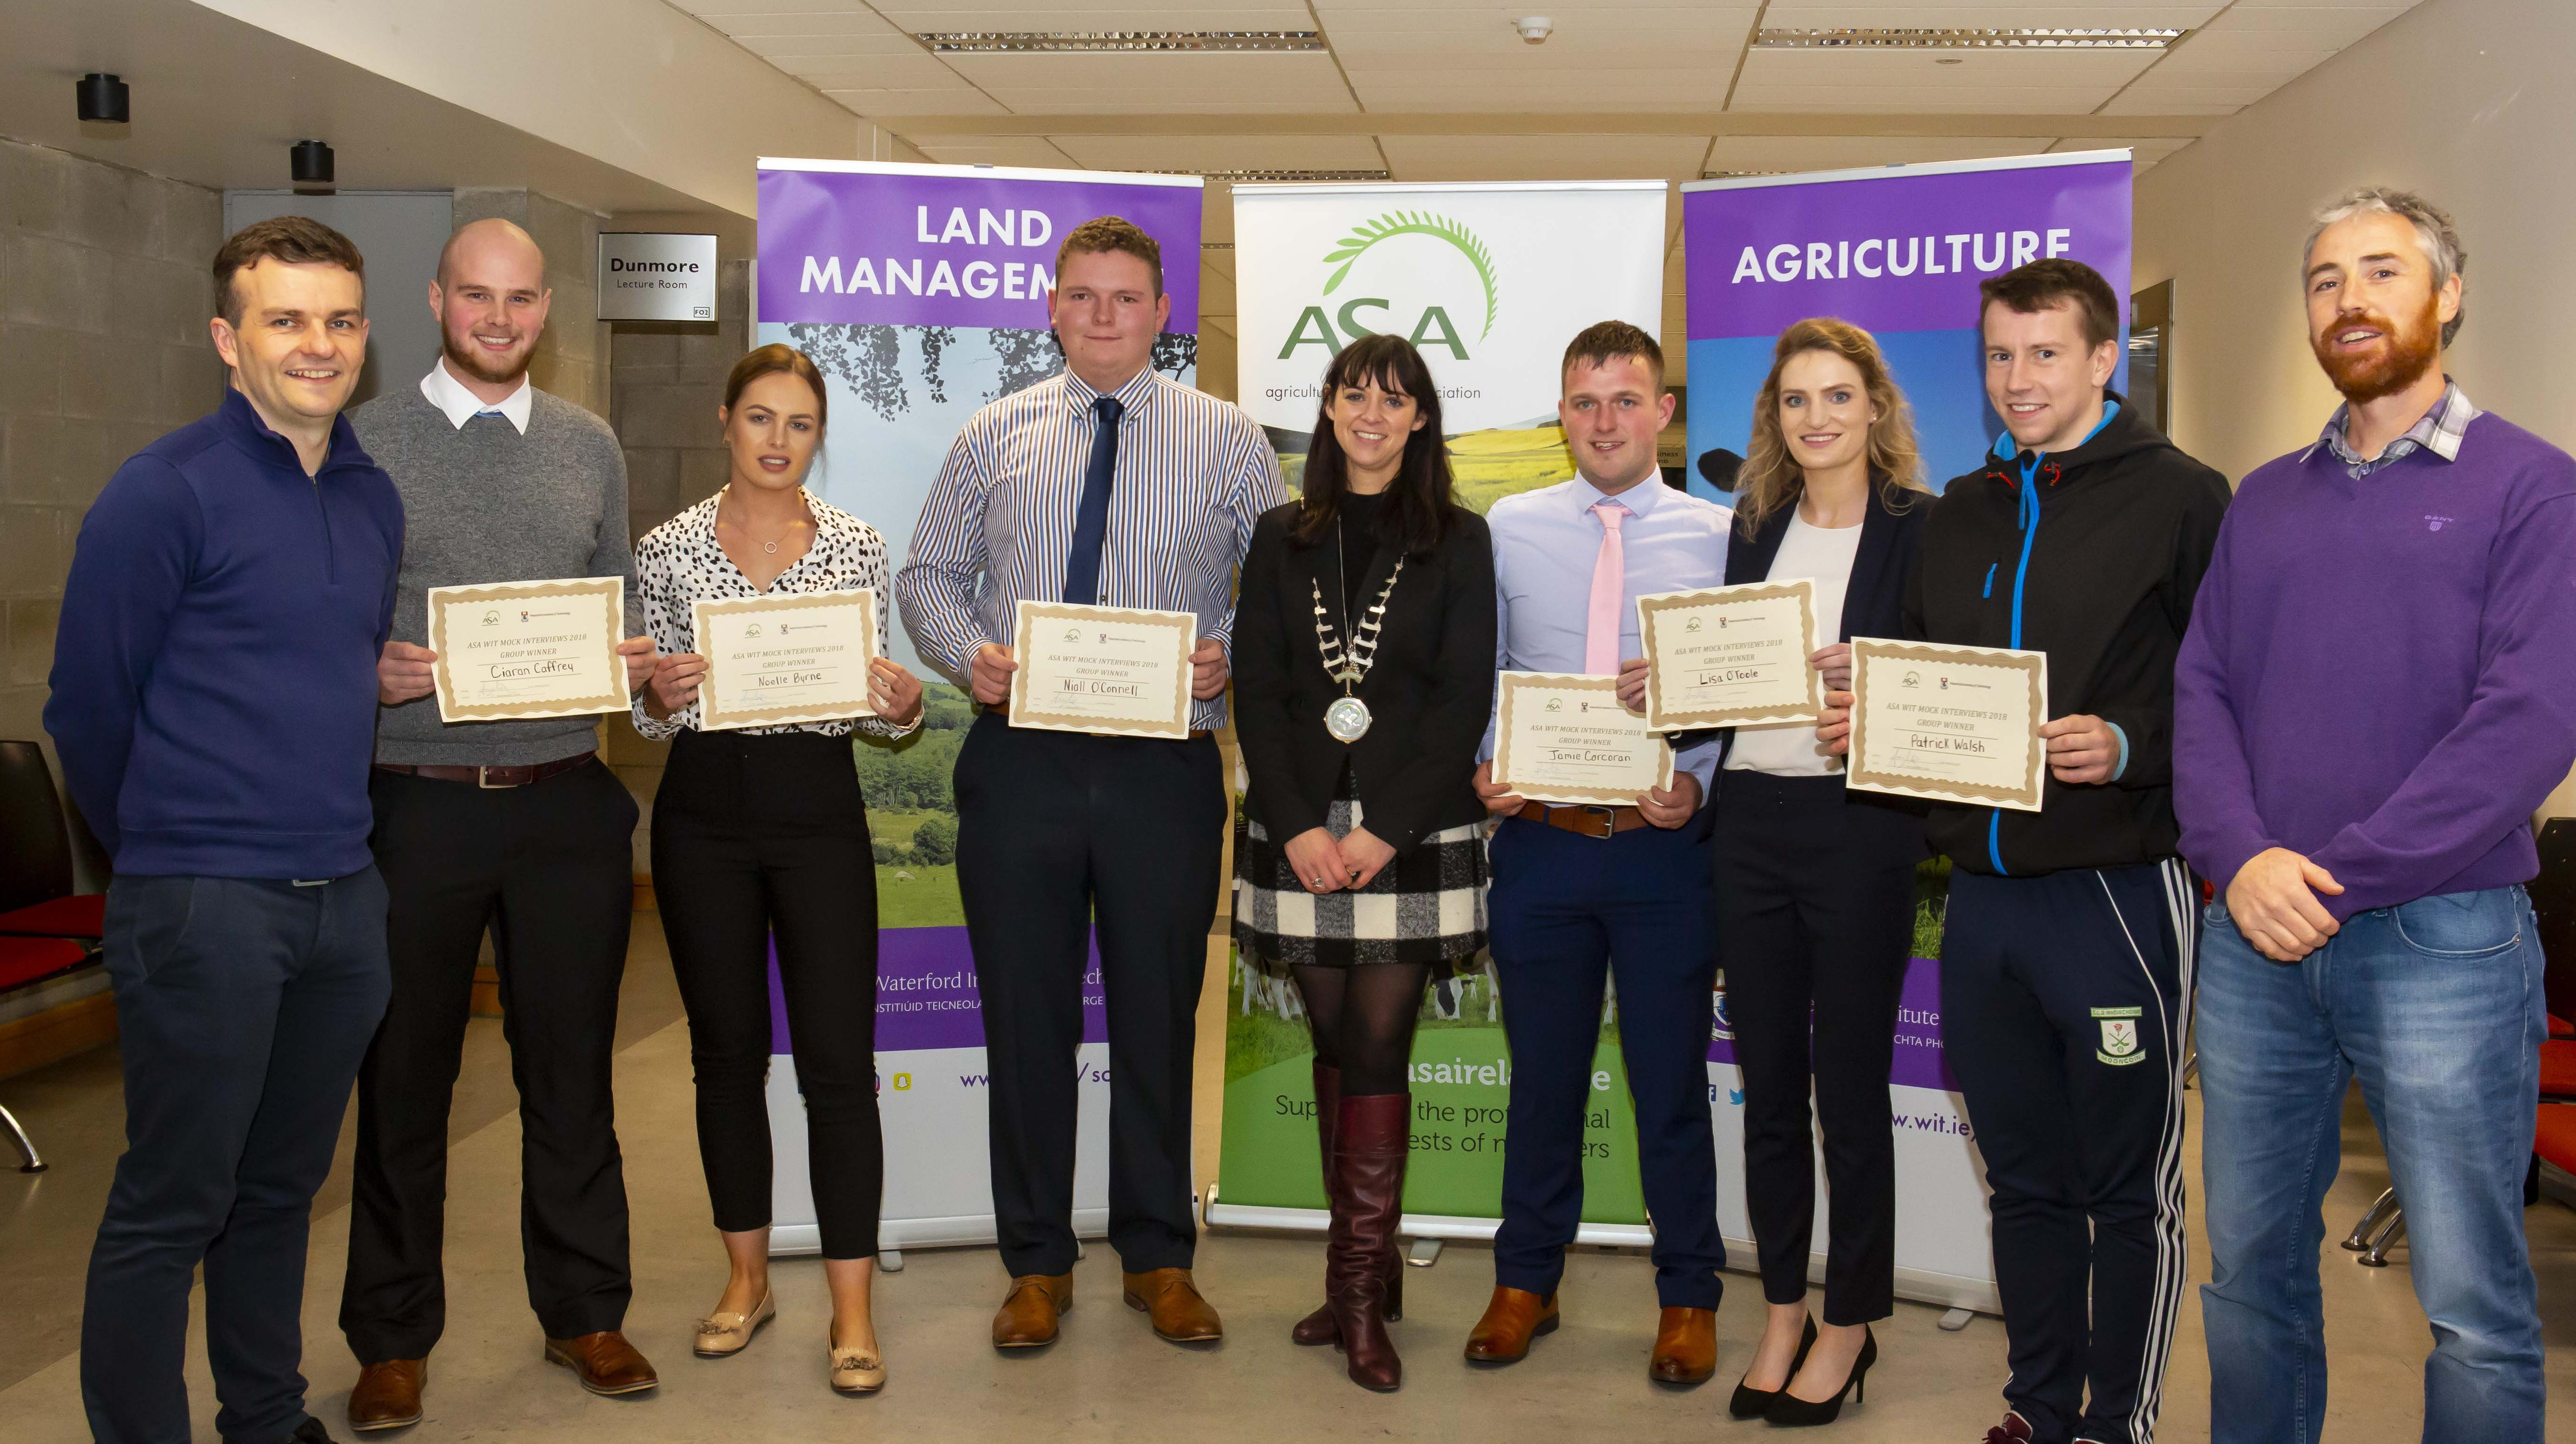 Winners of each group recieved their awards. L-R- Michael Breen, WIT; Ciaran Caffrey; Noelle Byrne; Niall O'Connell; Amii McKeever, ASA President; Jamie Corcoran; Lisa O'Toole; Patrick Walsh, Tony Woodcock, WIT (missing John Murphy) Photo by: Mary Browne